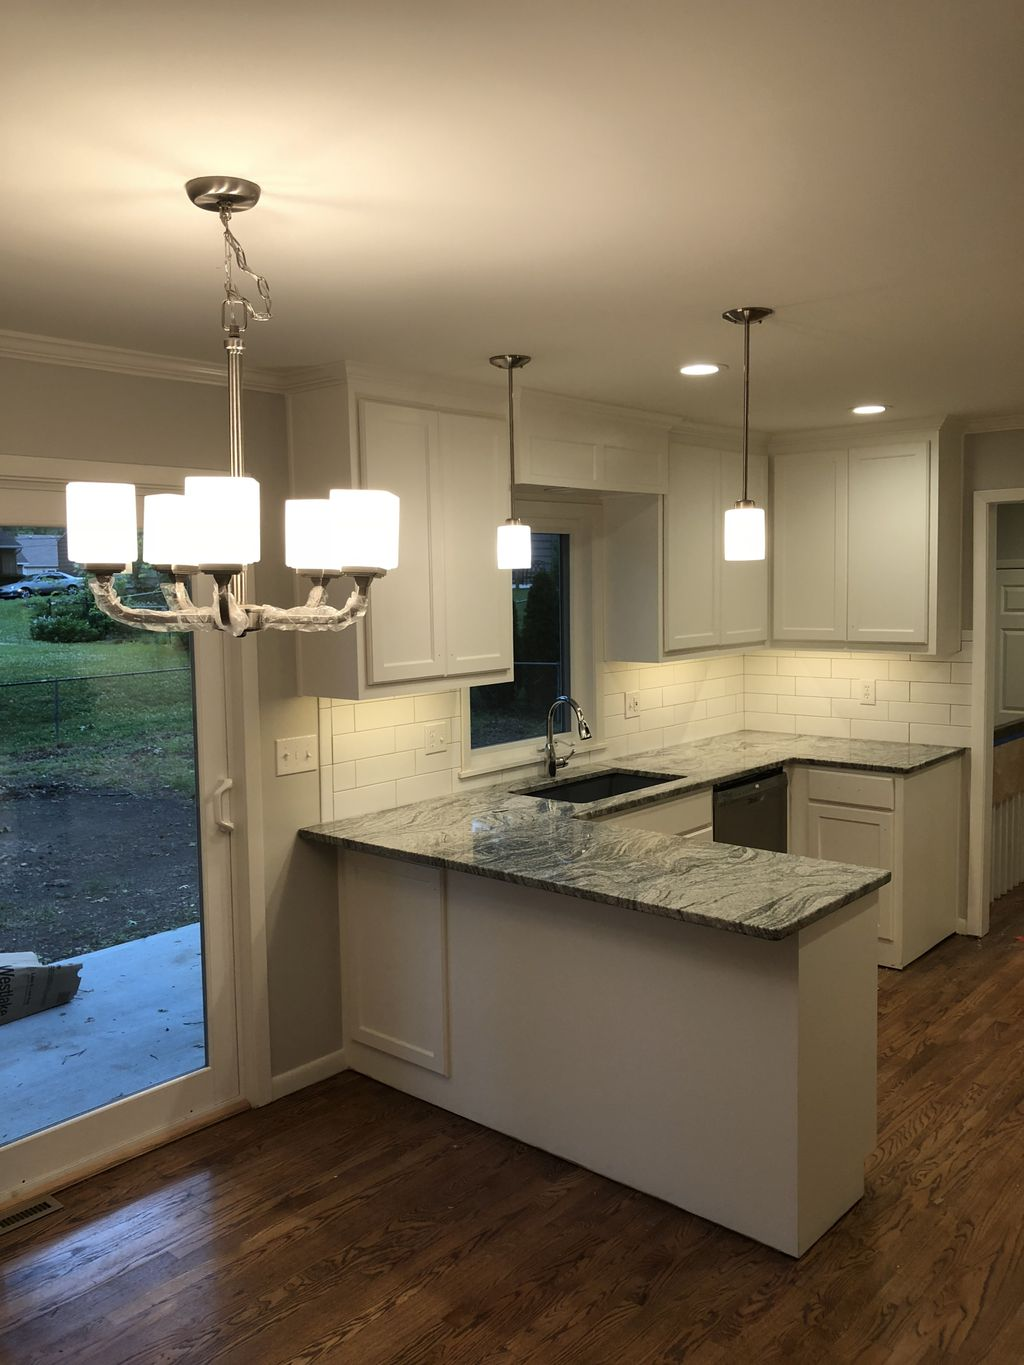 Cabinet Painting and house remodeling